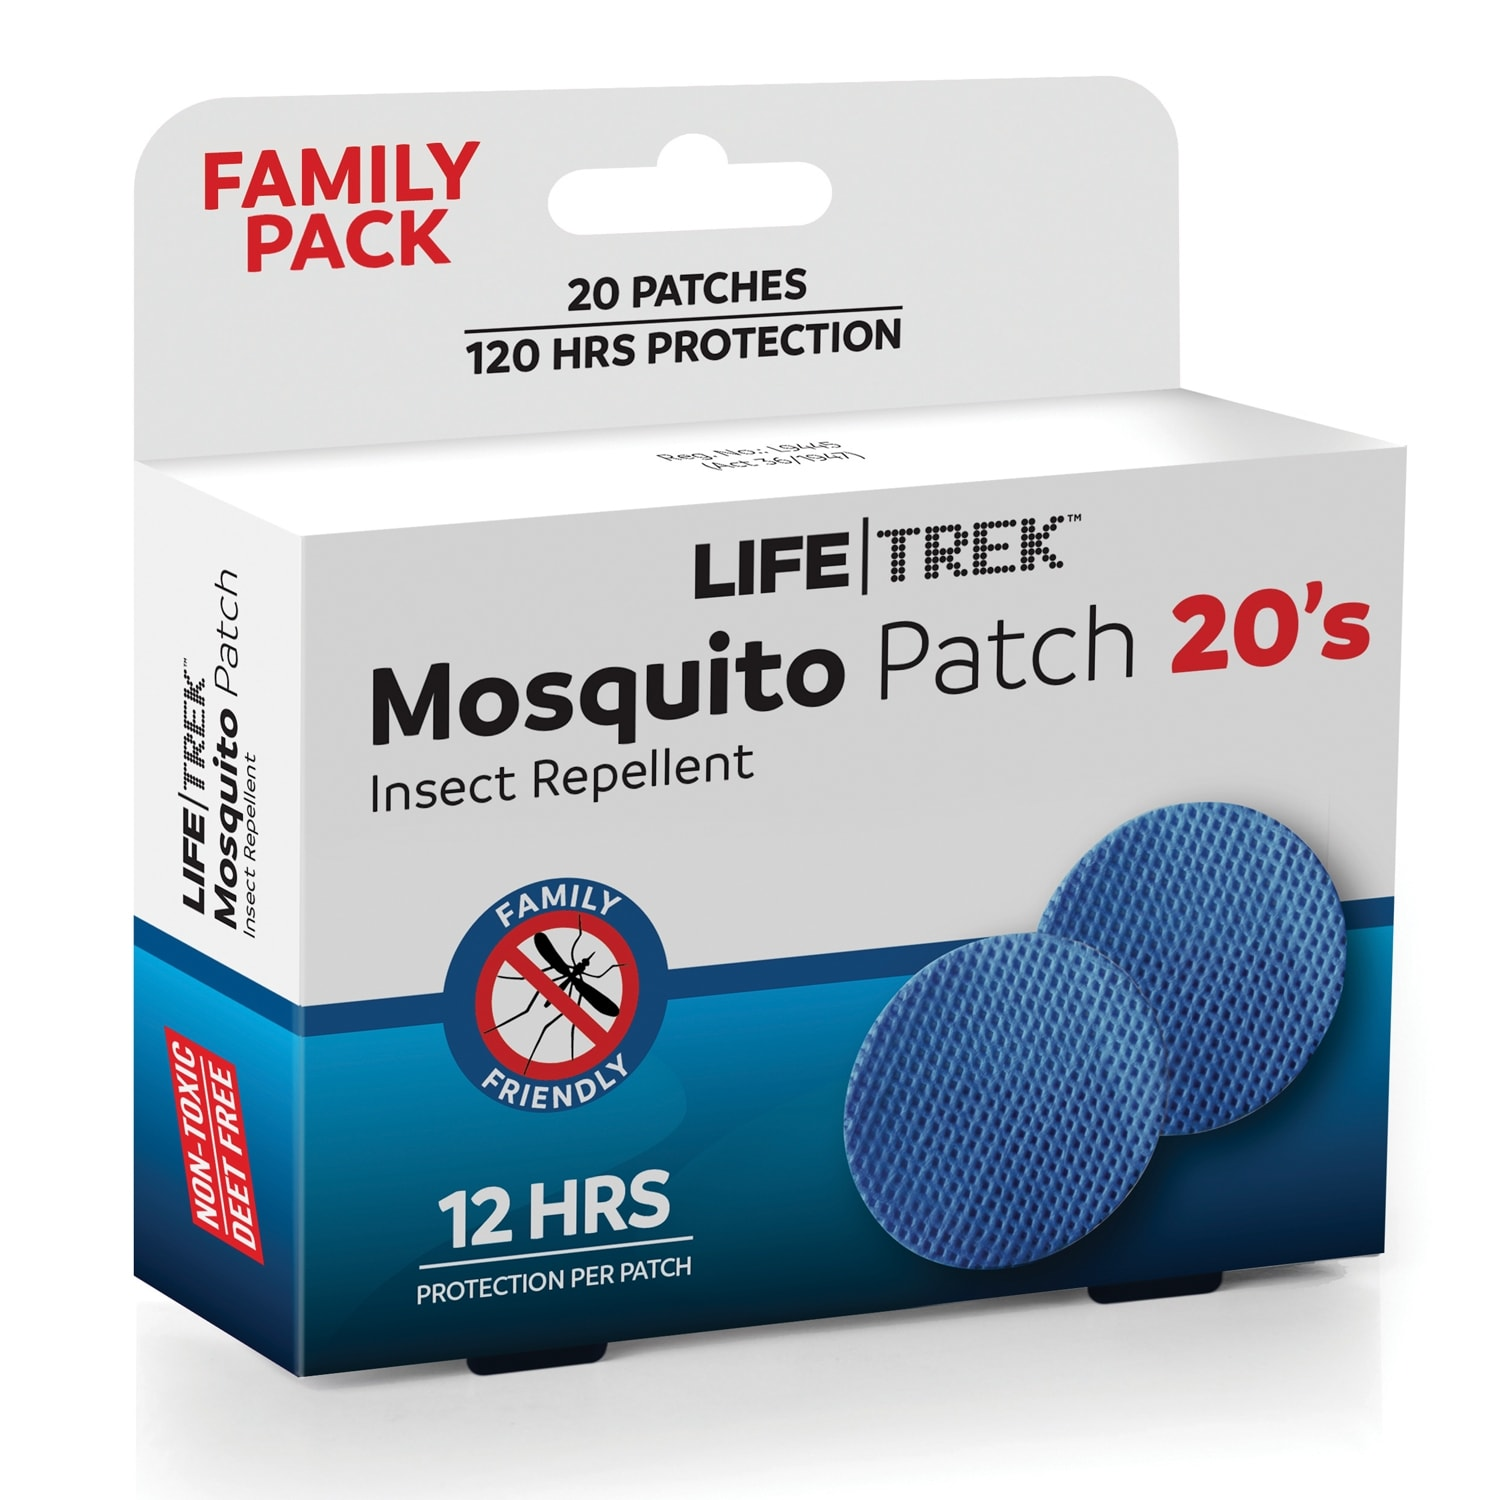 Lifetrek Mosquito Patch 20's